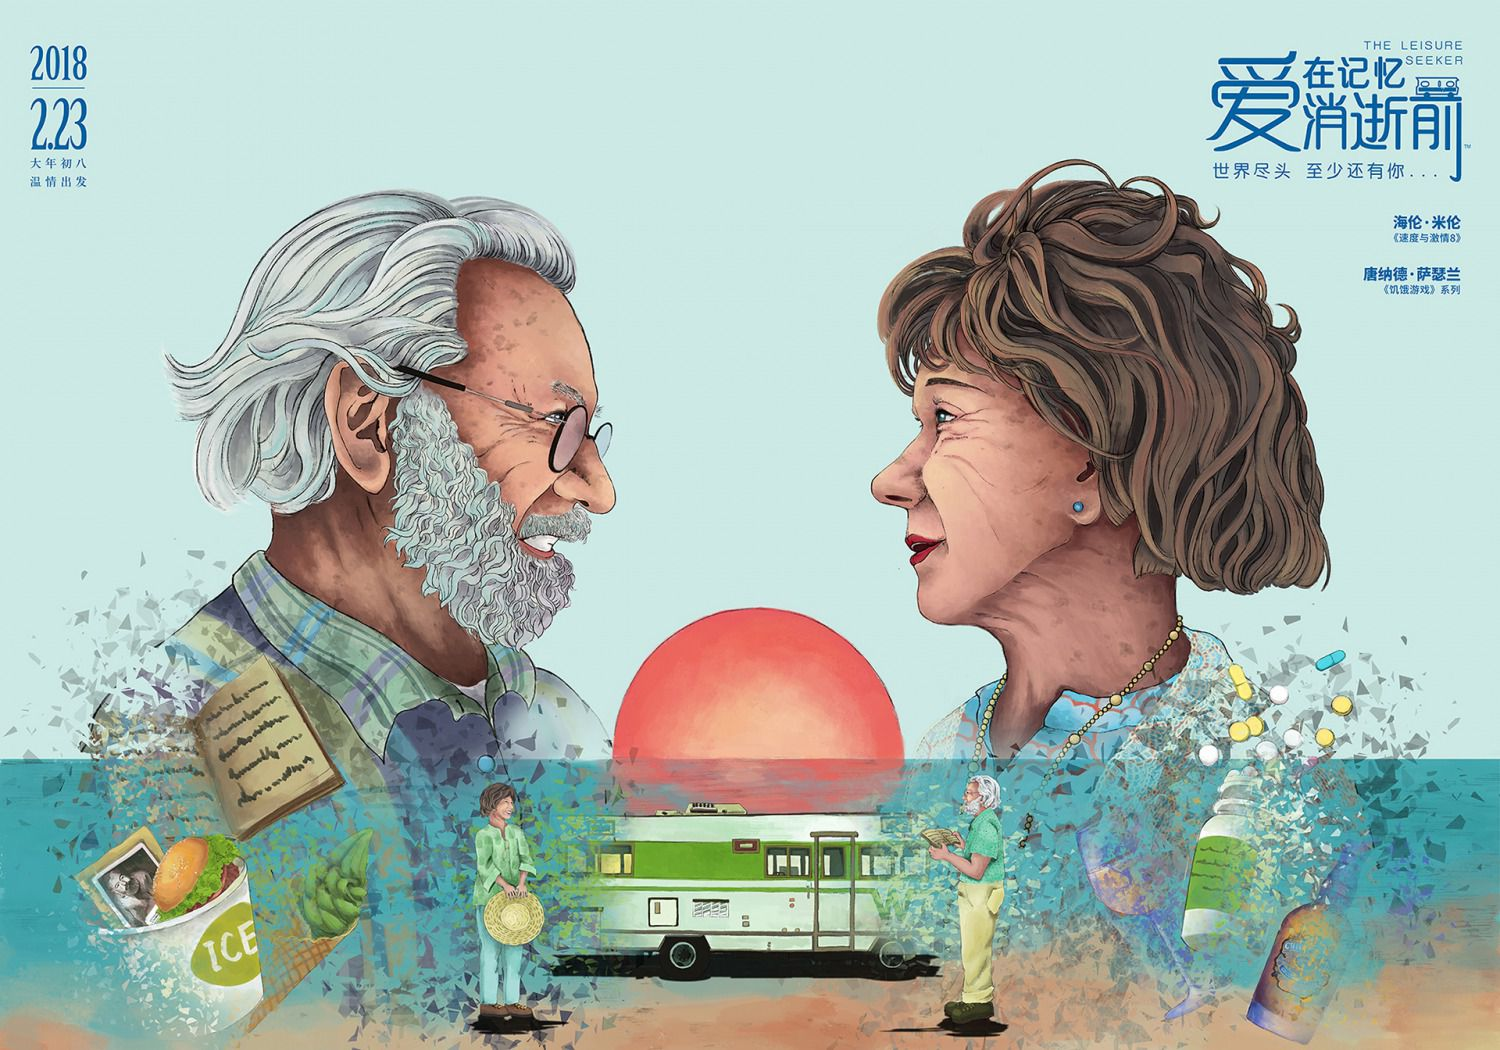 The Leisure Seeker - poster red sun